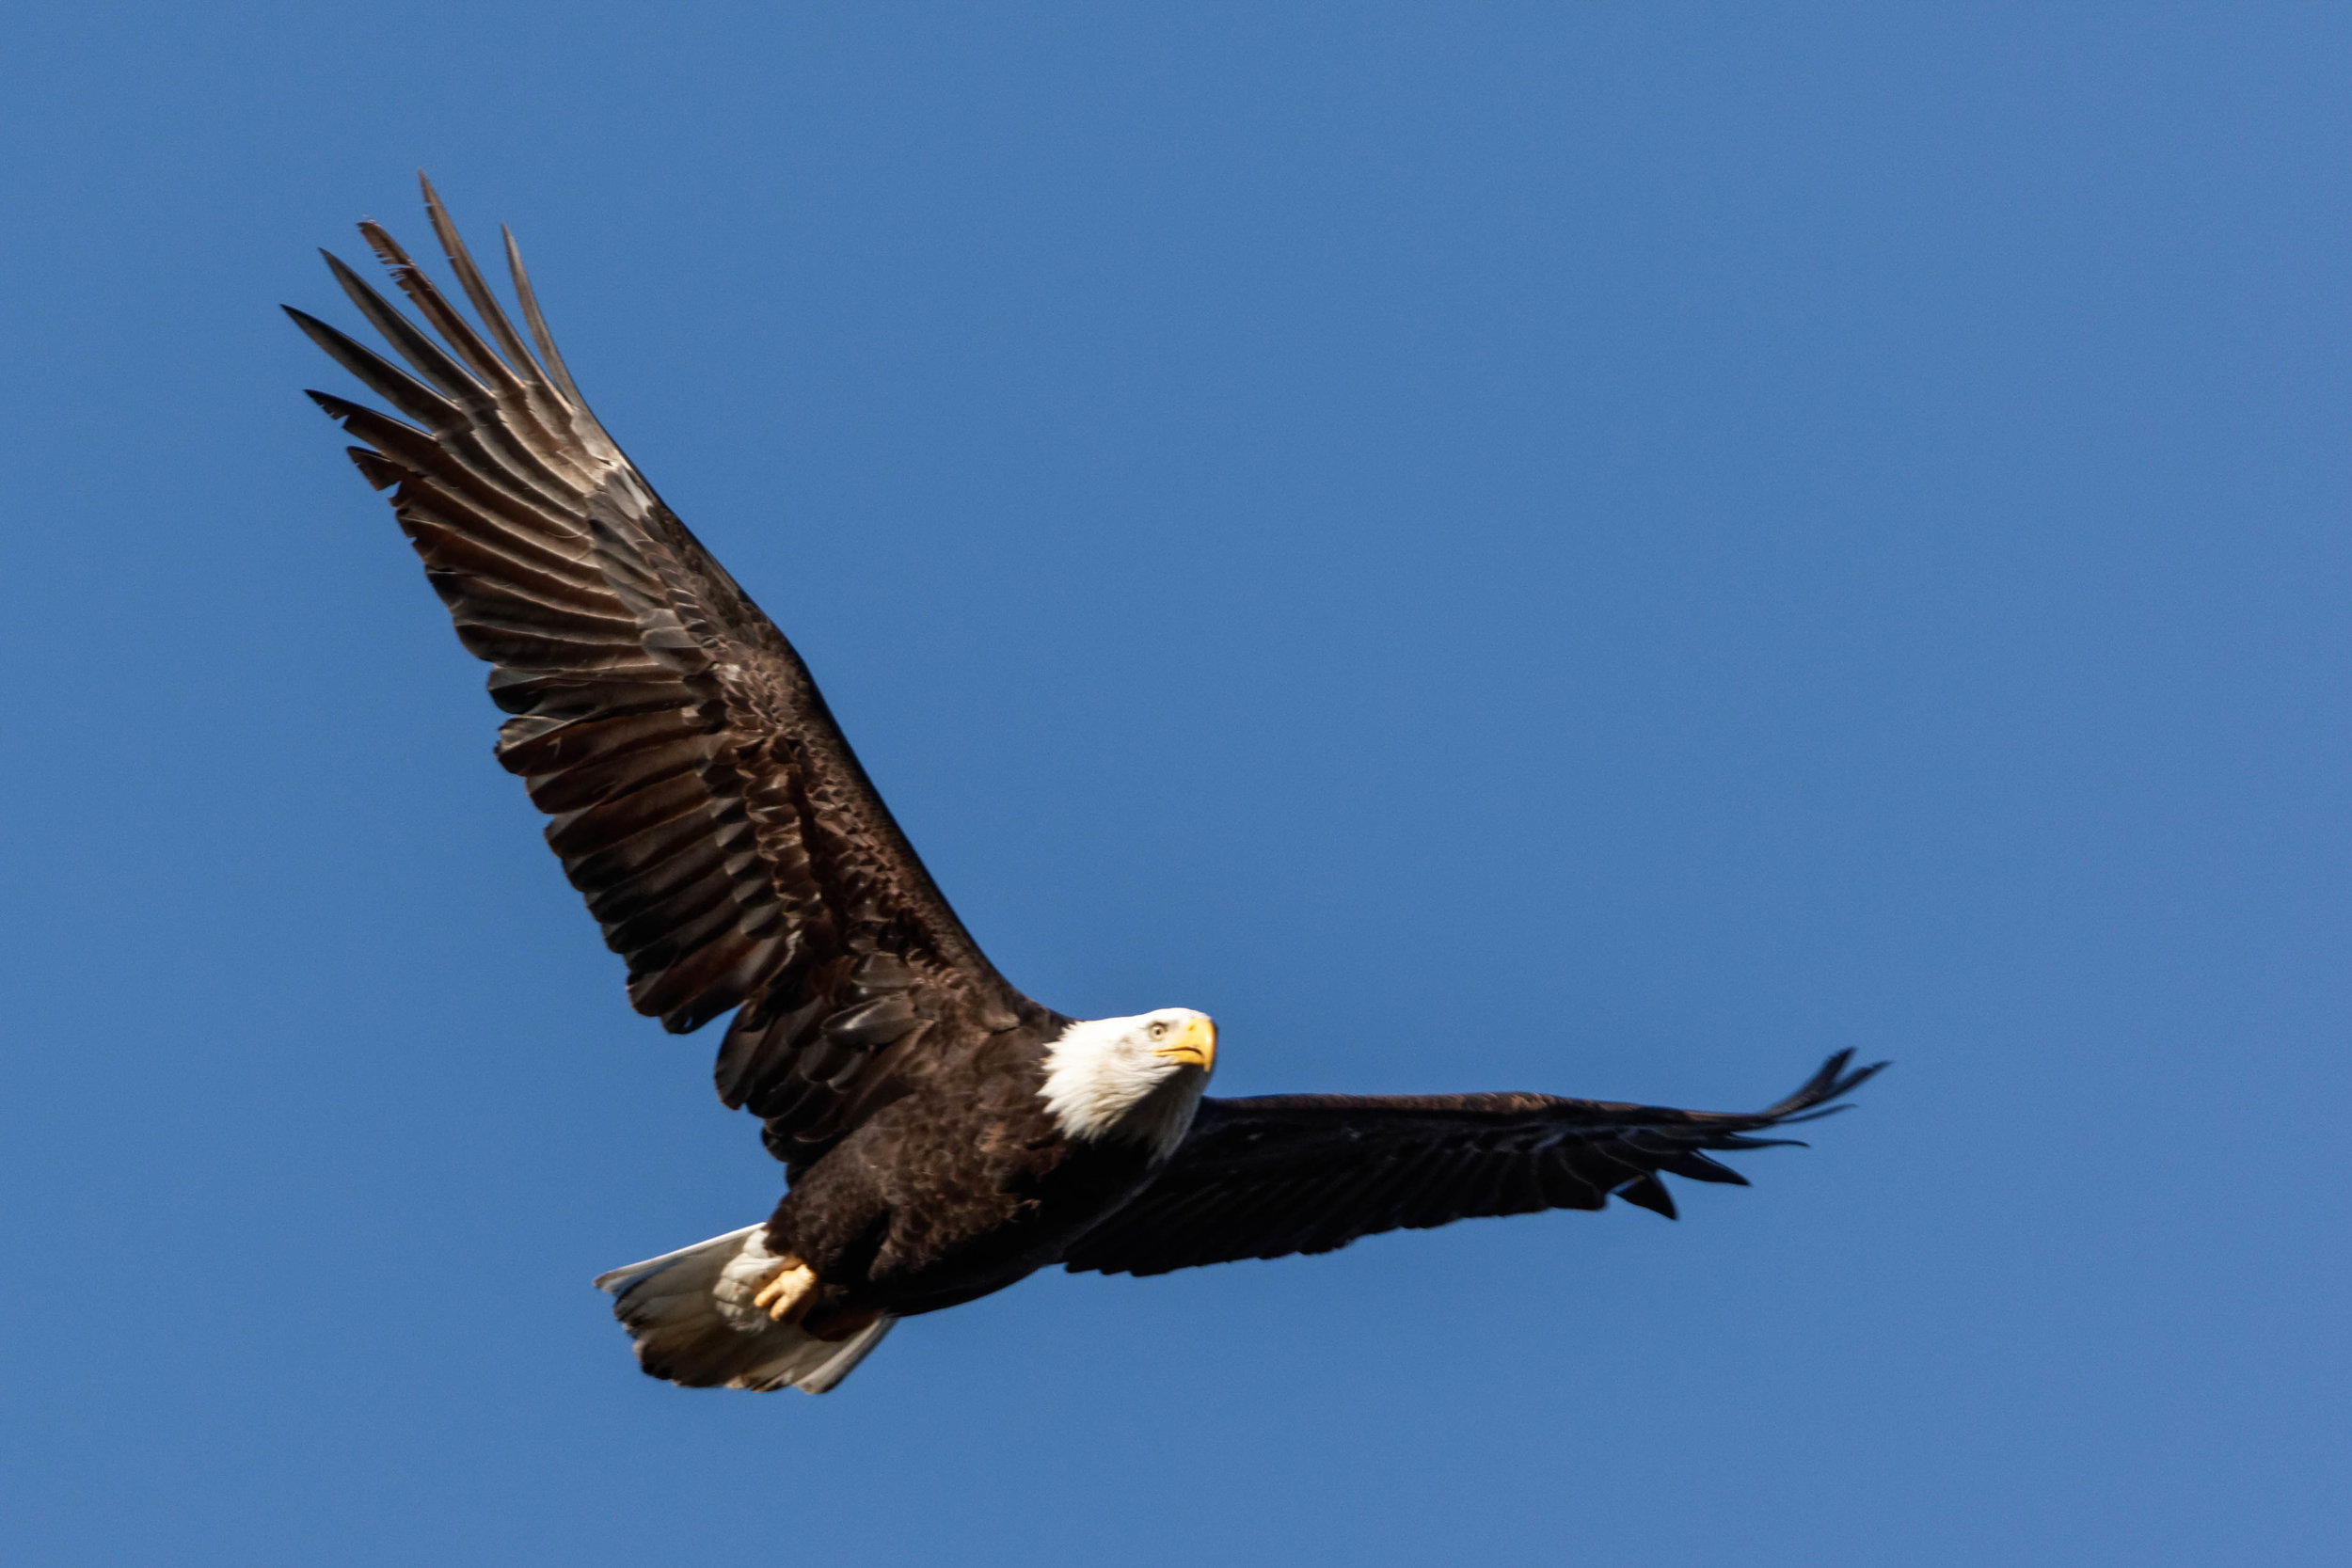 Bald Eagle in-flight, Photography by Ronald Woan